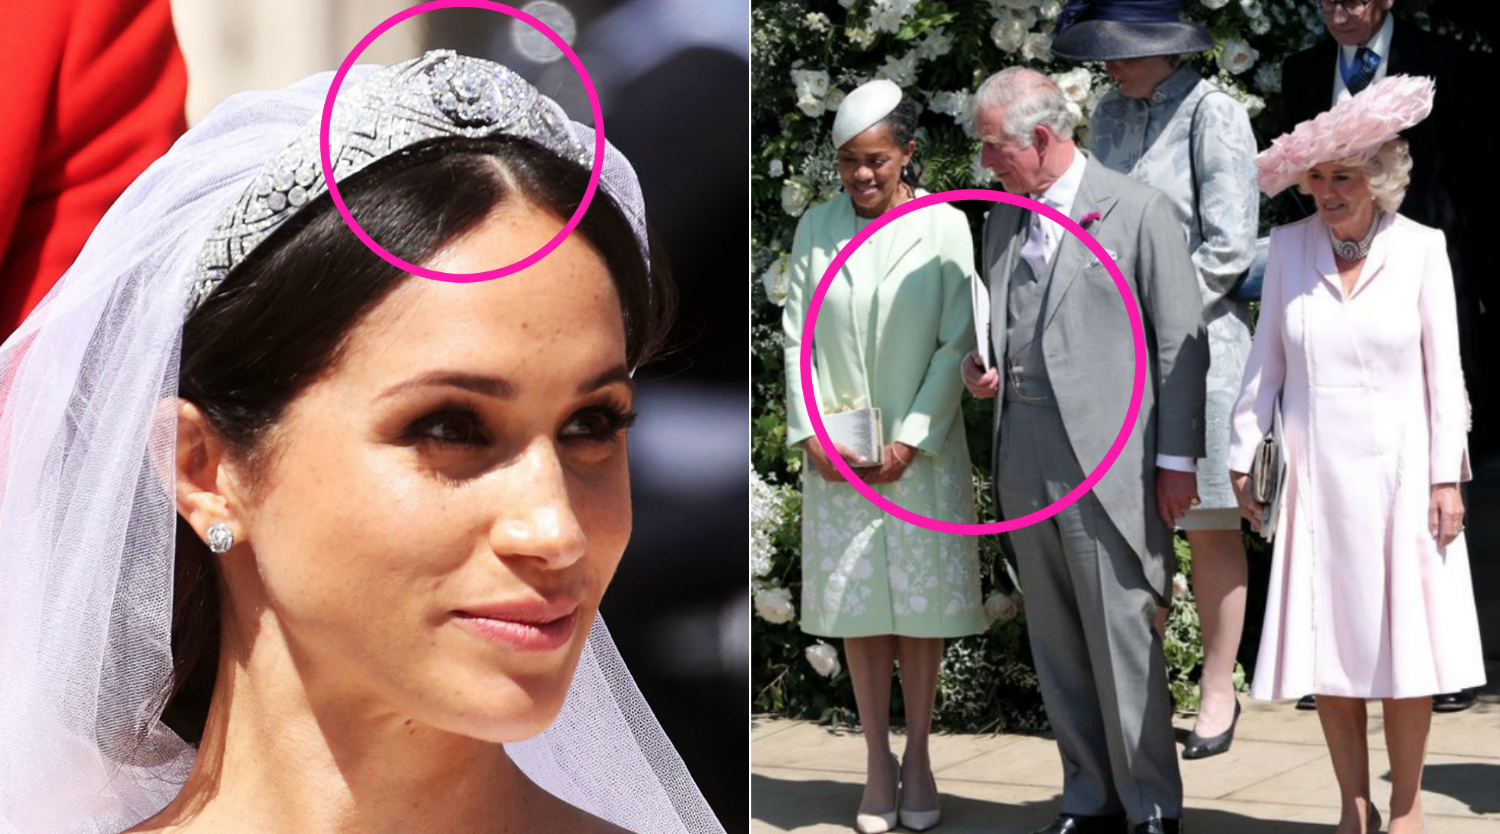 23 Major Moments You Missed At the Royal Wedding Meghan Markle and